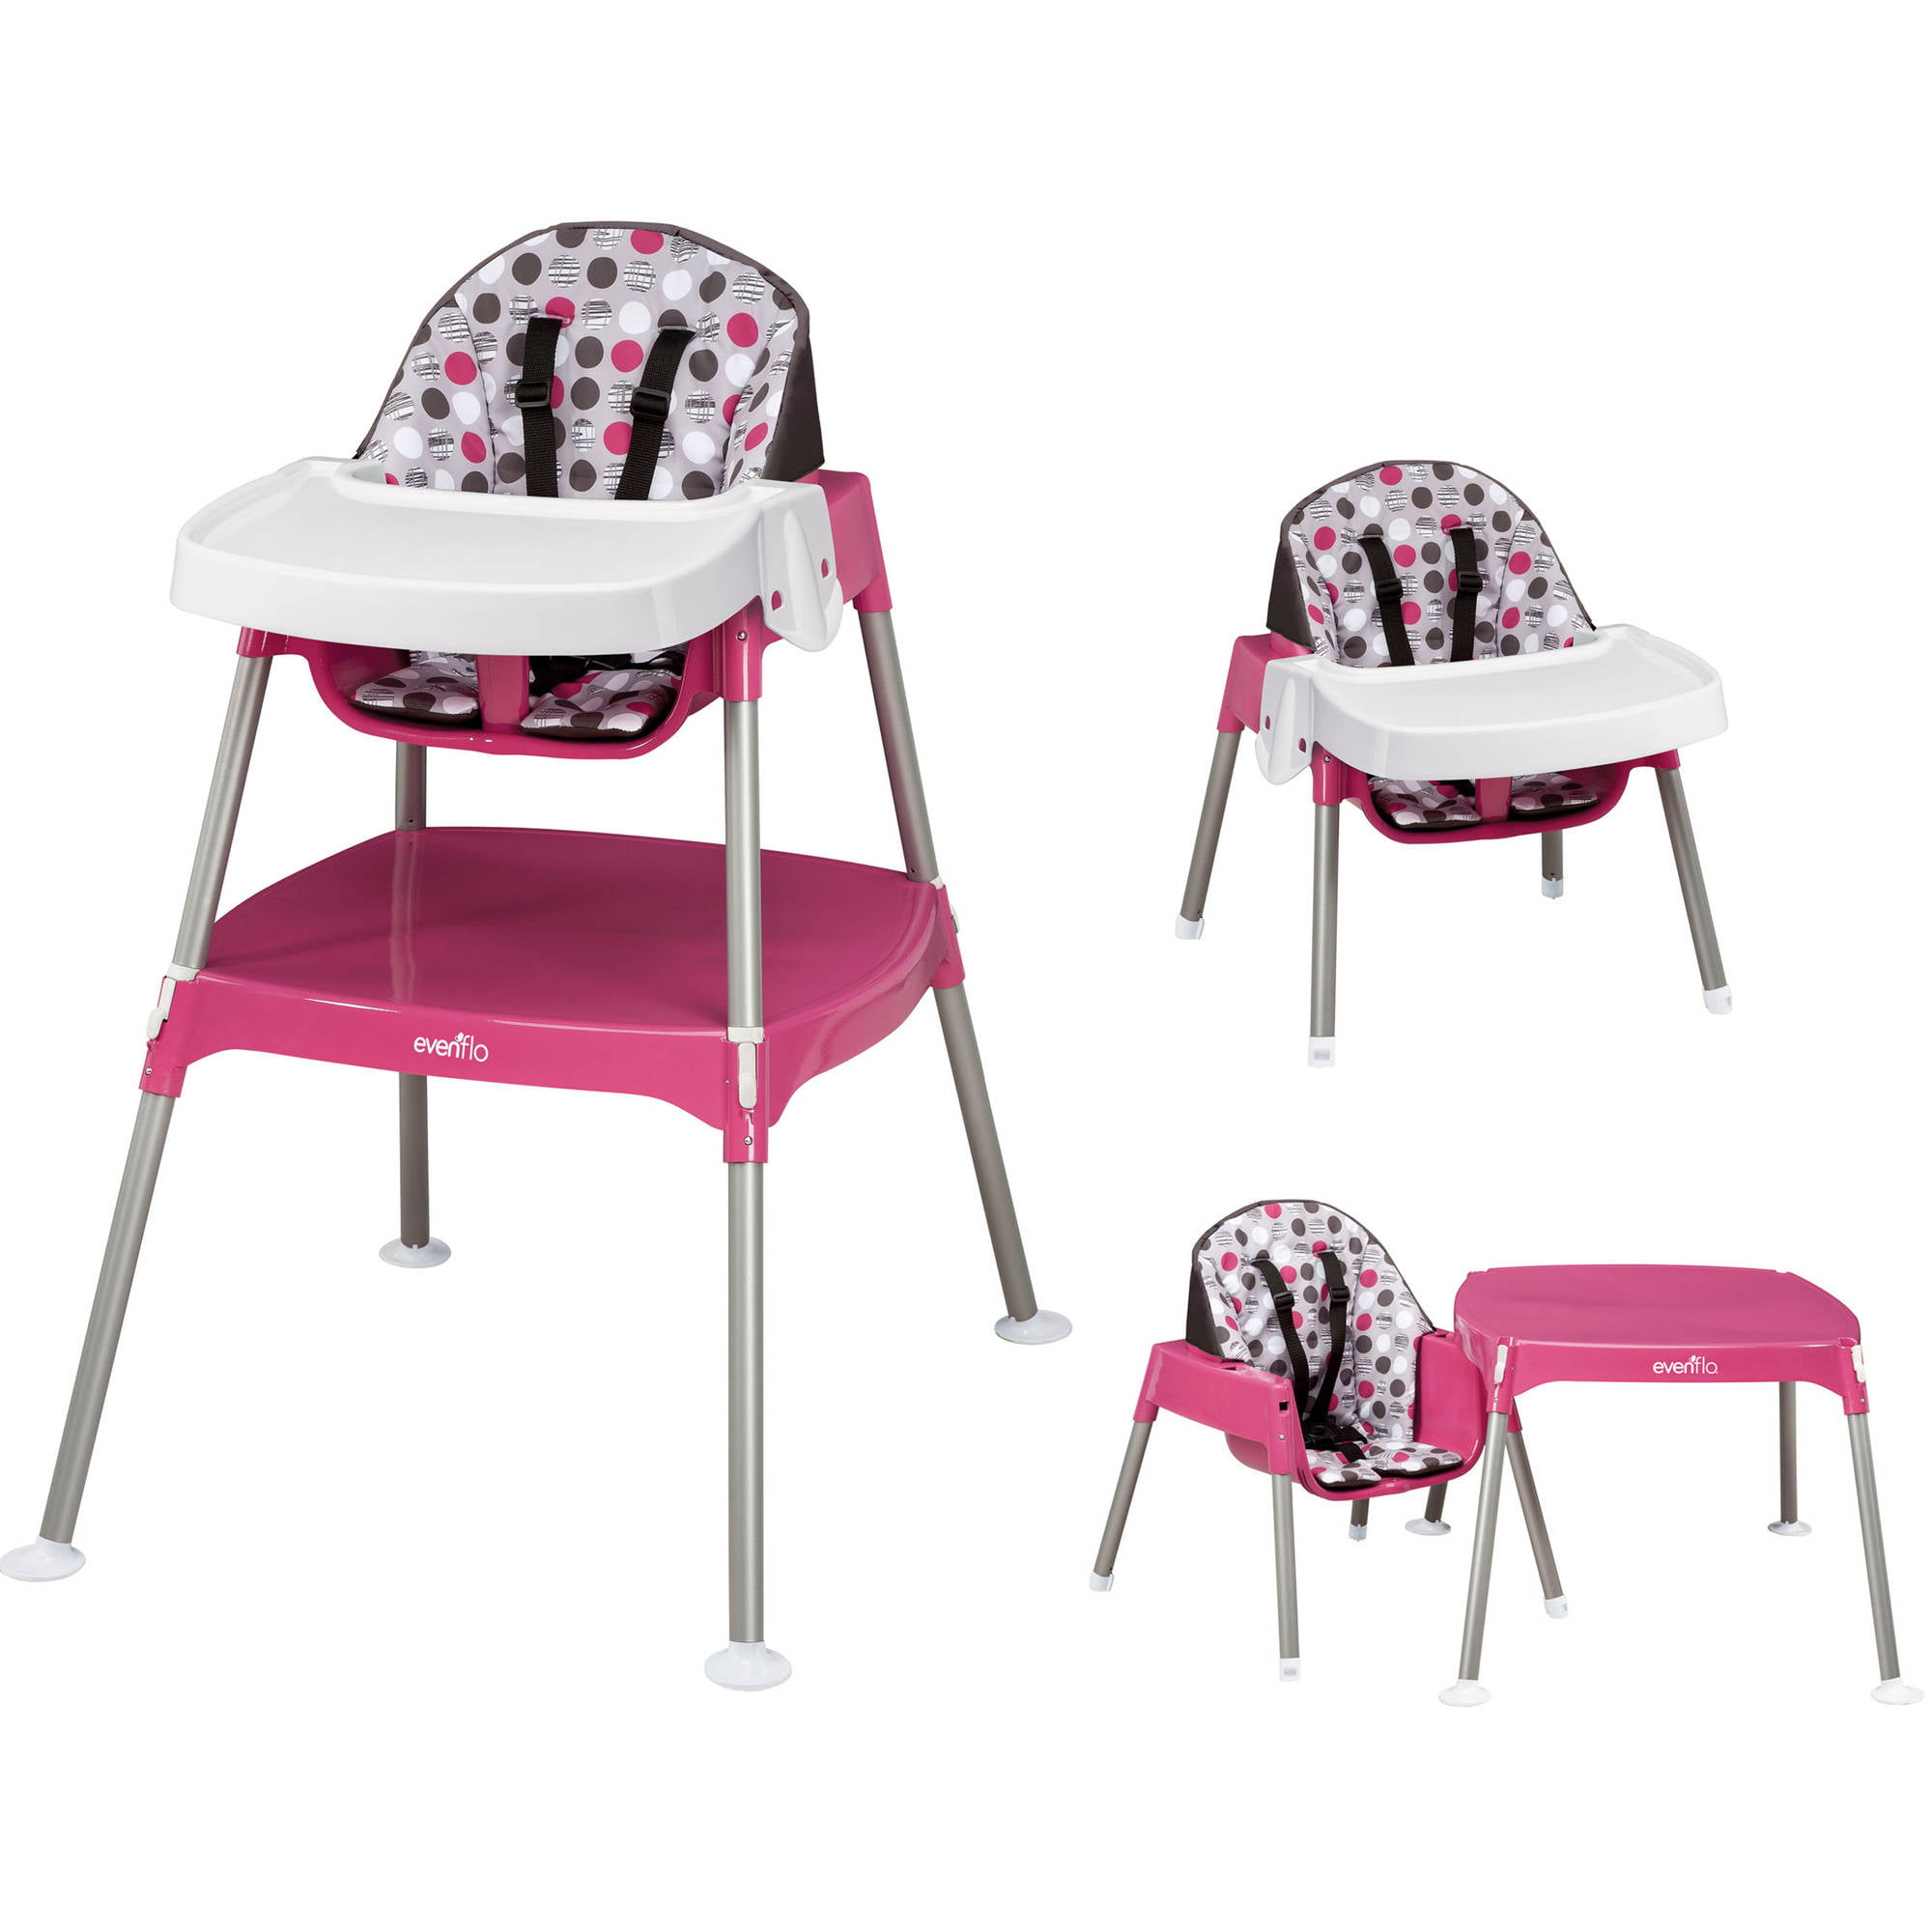 Evenflo Convertible High Chair Dottie Rose Walmart